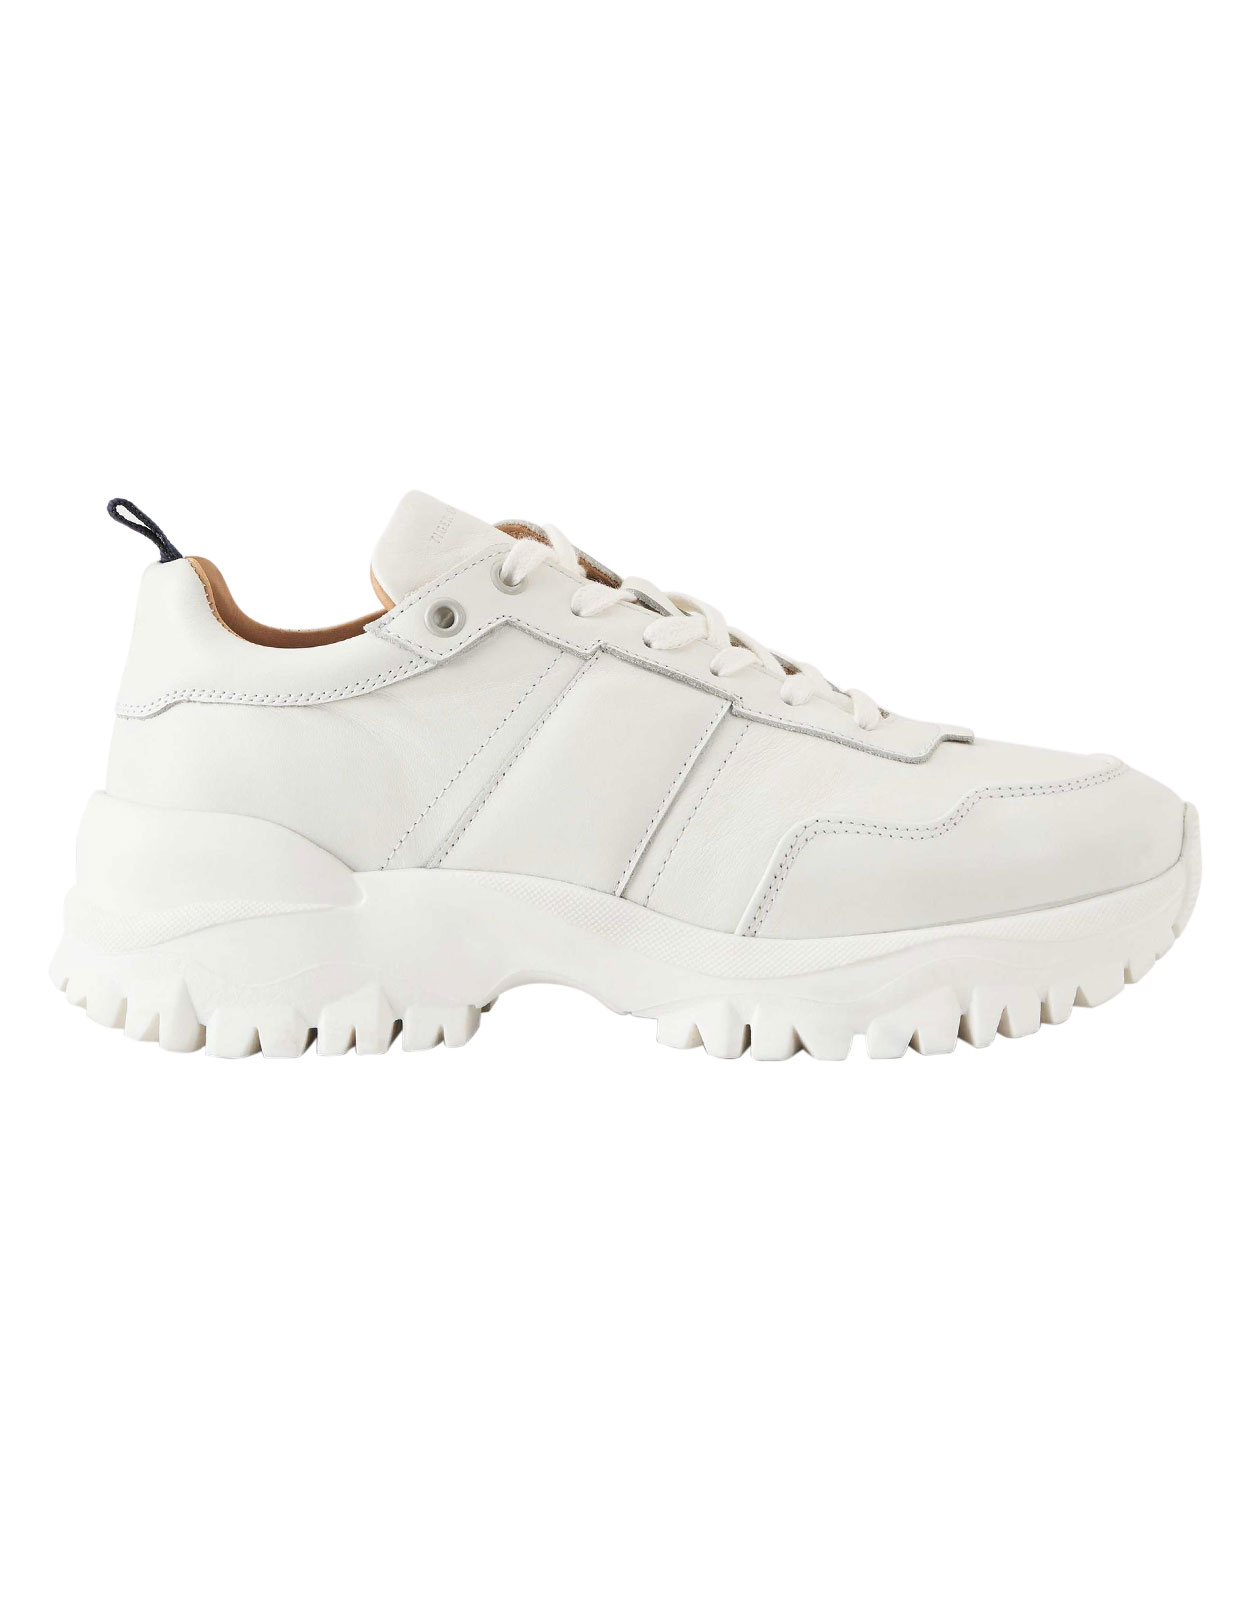 Afria L Sneakers TZ Off White